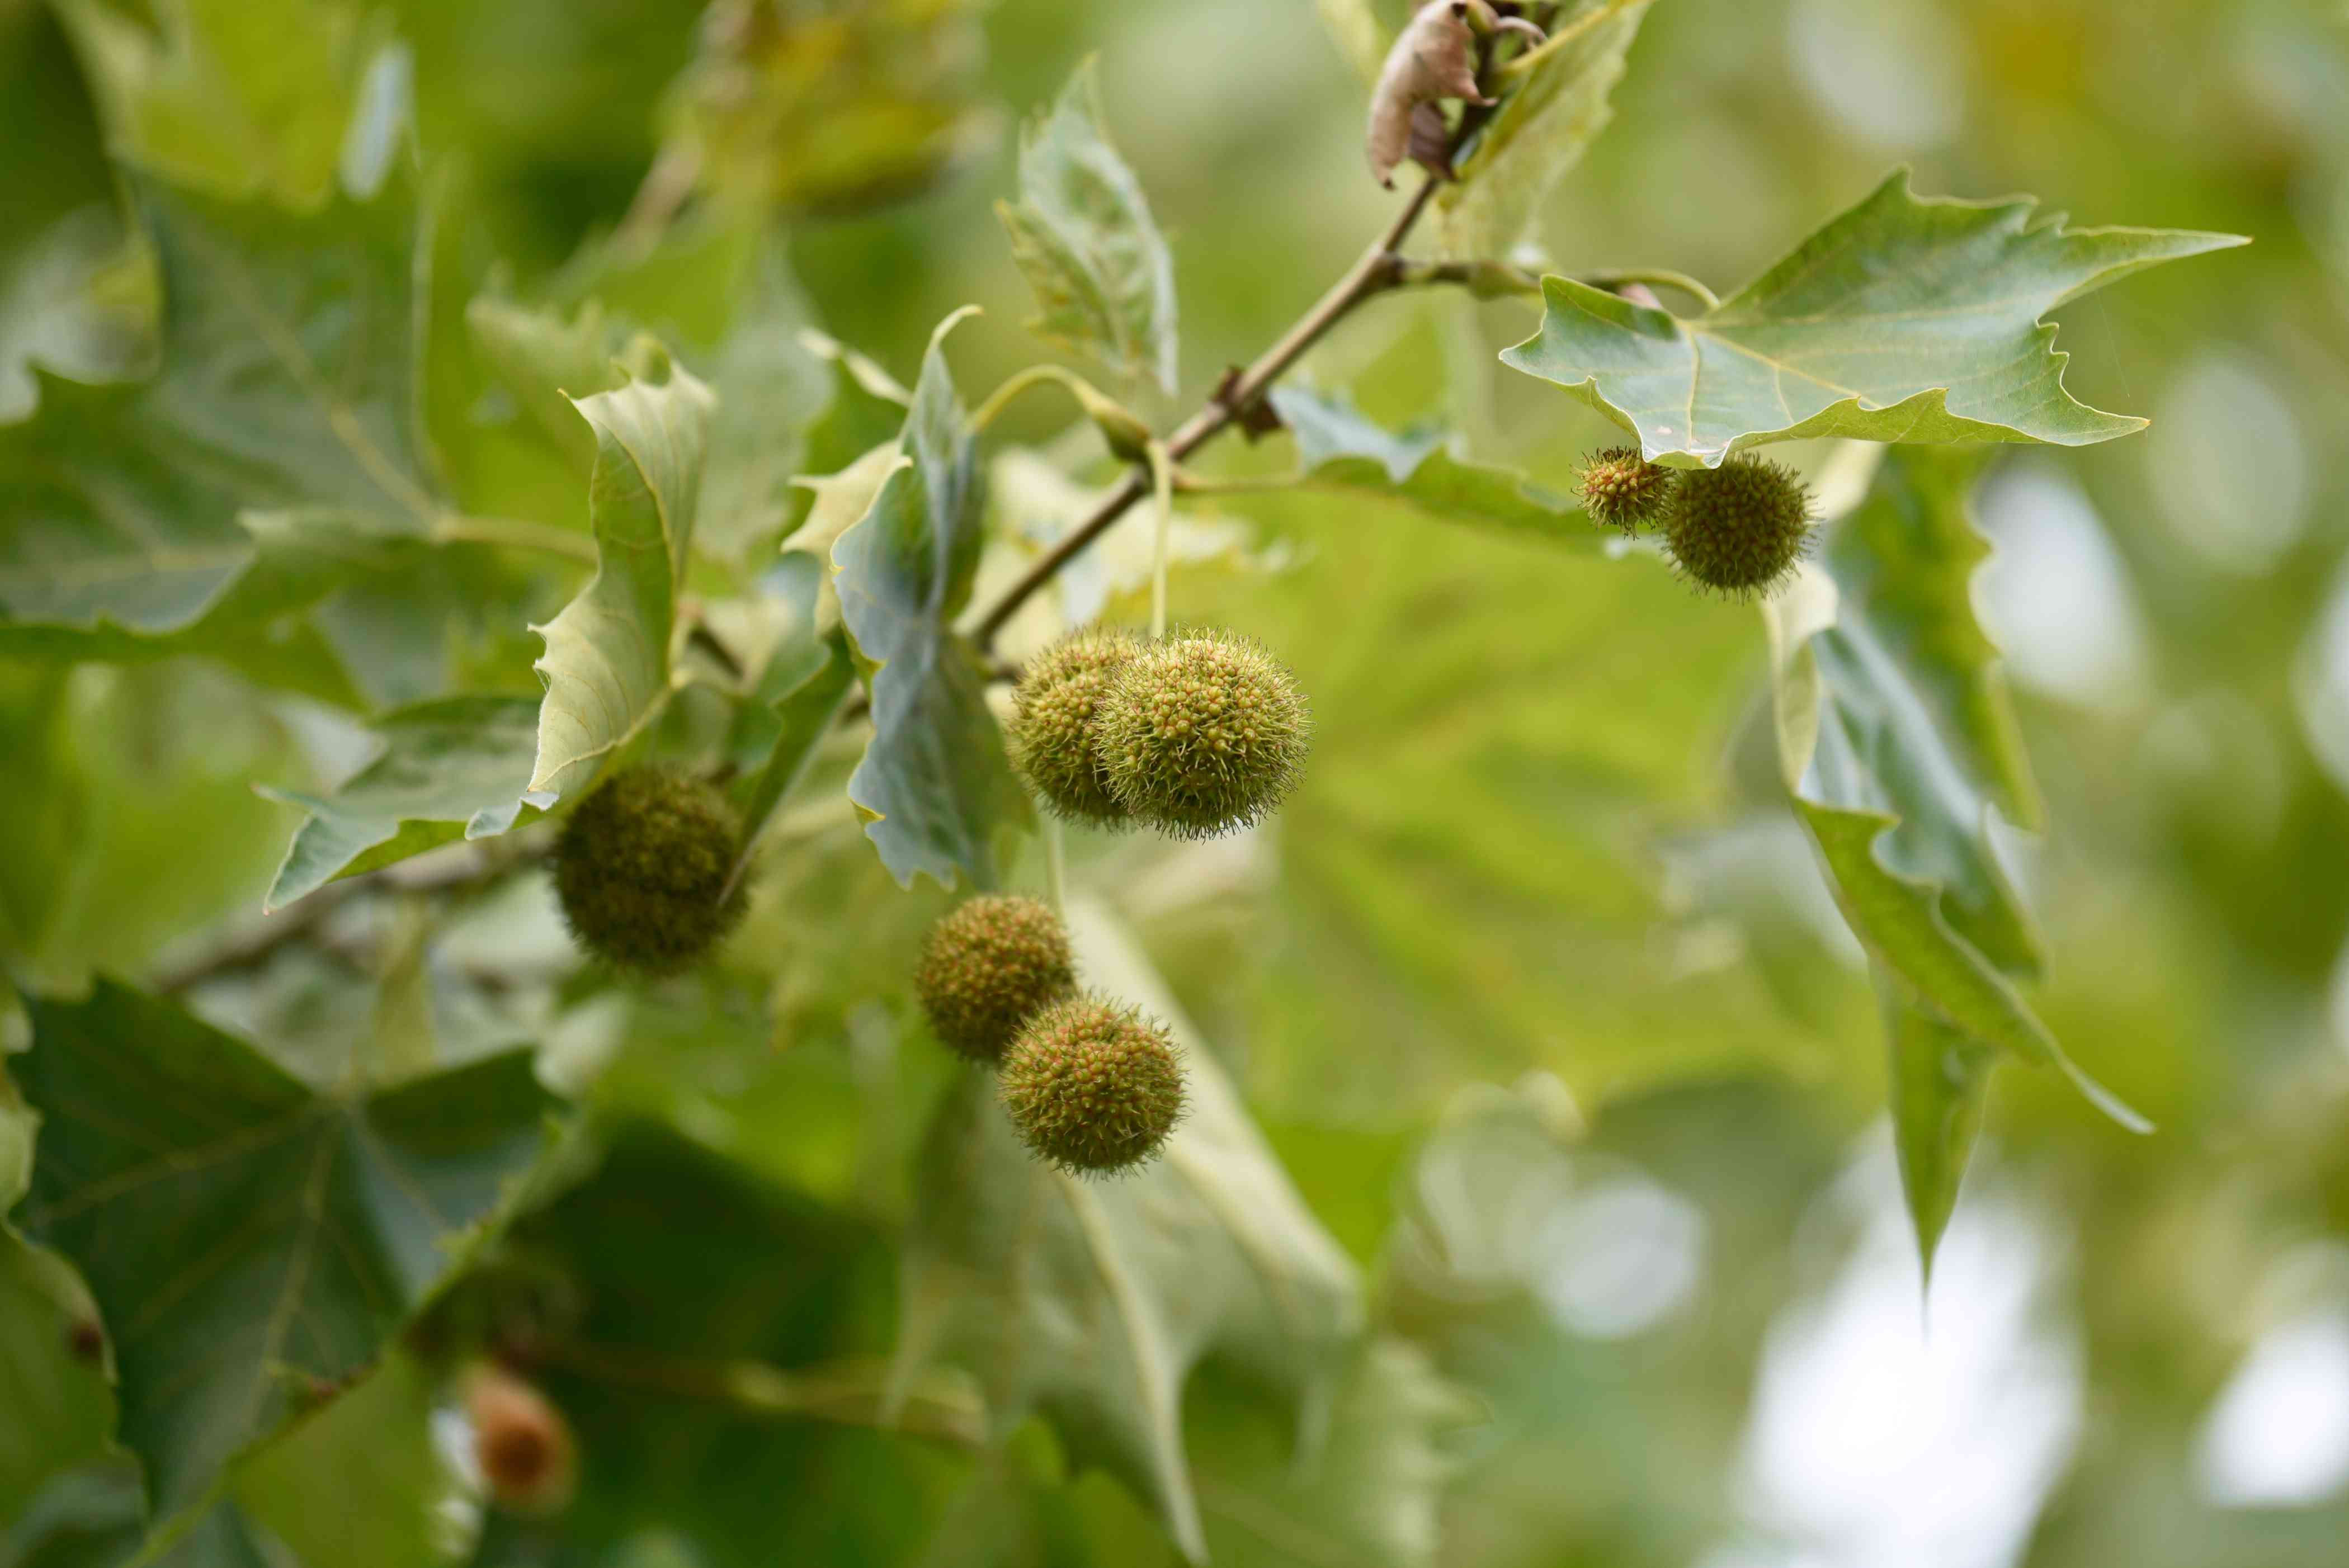 Sycamore tree branch with round fuzzy seed pods hanging near tooth-edged leaves closeup